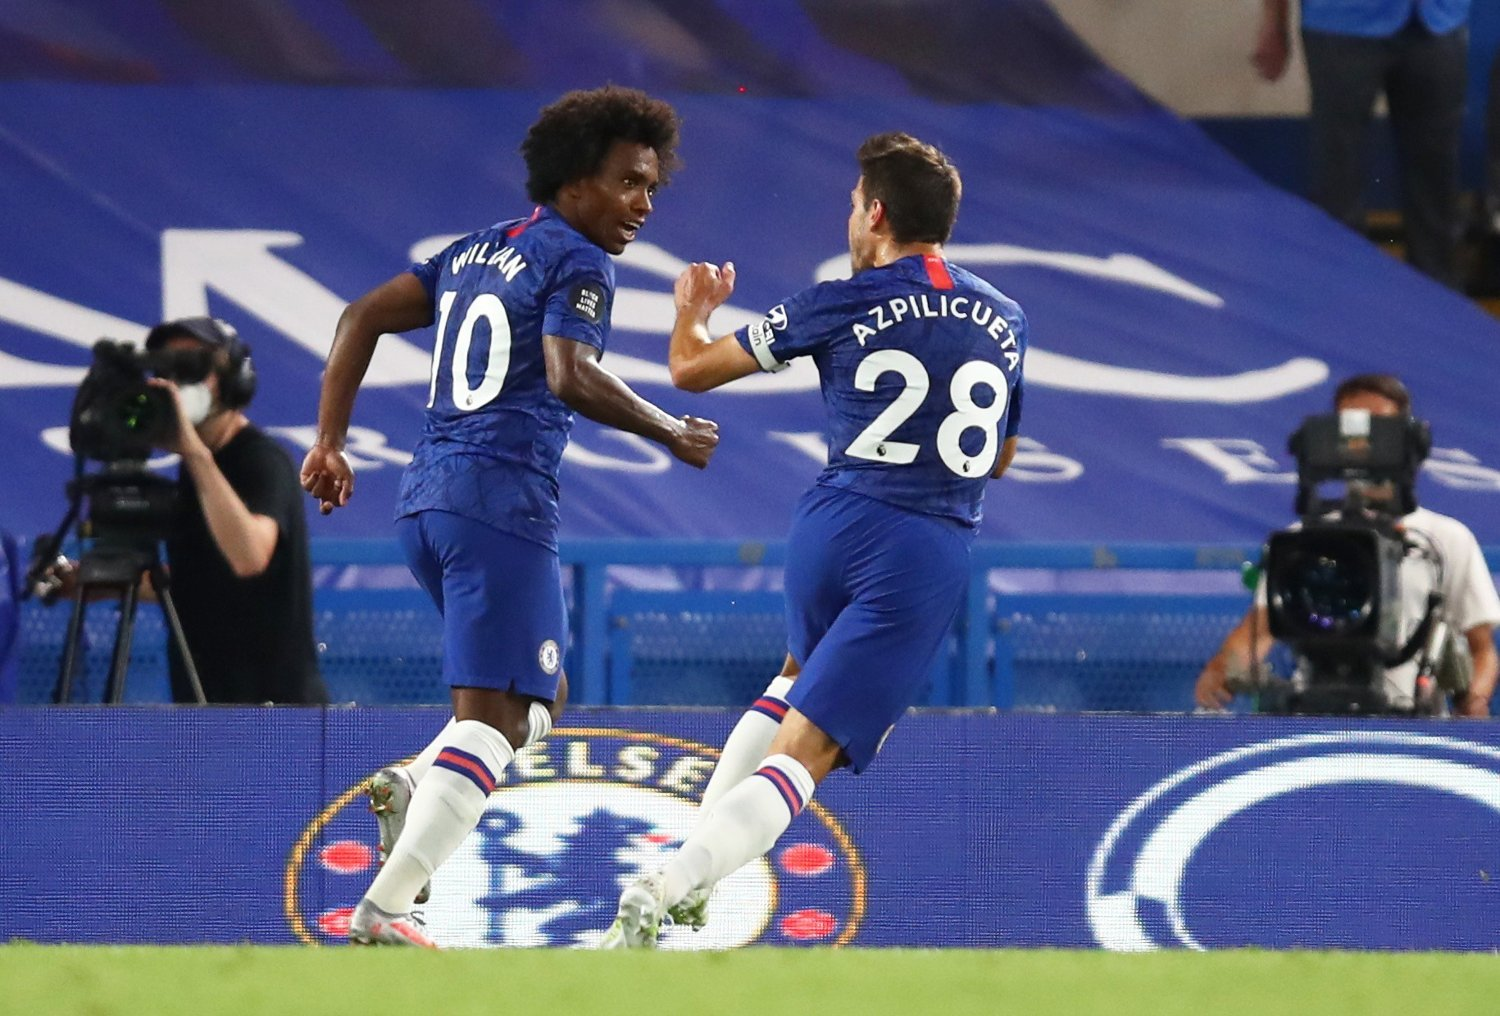 Soccer Football - Premier League - Chelsea v Manchester City - Stamford Bridge, London, Britain - June 25, 2020 Chelsea's Willian celebrates scoring their second goal with Cesar Azpilicueta, as play resumes behind closed doors following the outbreak of the coronavirus disease Julian Finney/Pool via REUTERS EDITORIAL USE ONLY. No use with unauthorized audio, video, data, fixture lists, club/league logos or